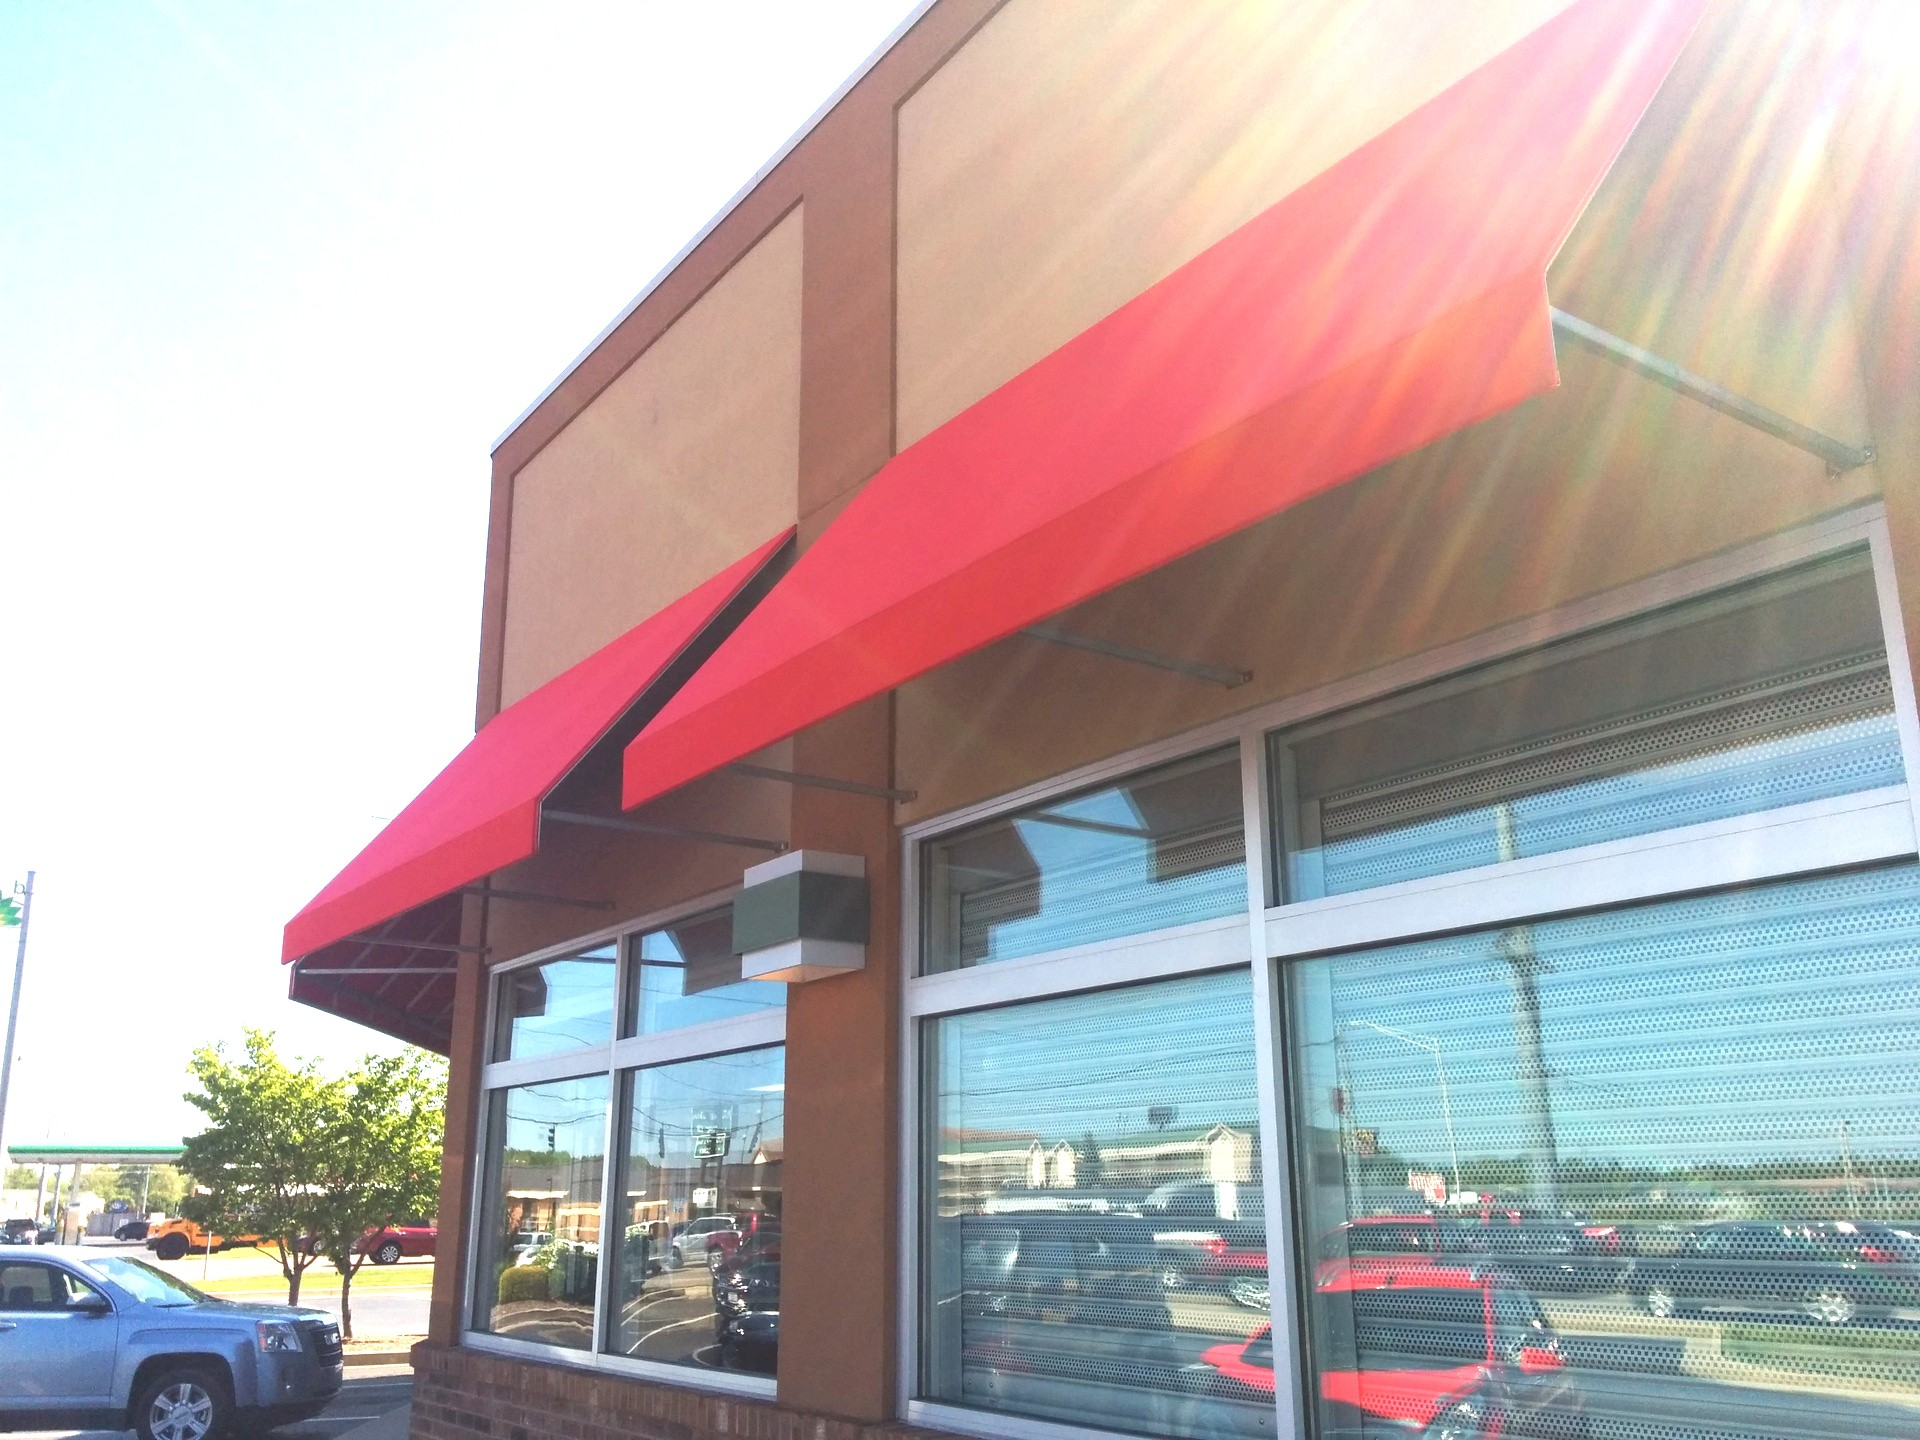 Billu0027s Awnings u0026 Upholstery is a locally owned and operated awning and upholstery business located in Murray Kentucky. Over the past 40 years weu0027ve helped ... & Billu0027s Awnings u0026 Upholstery